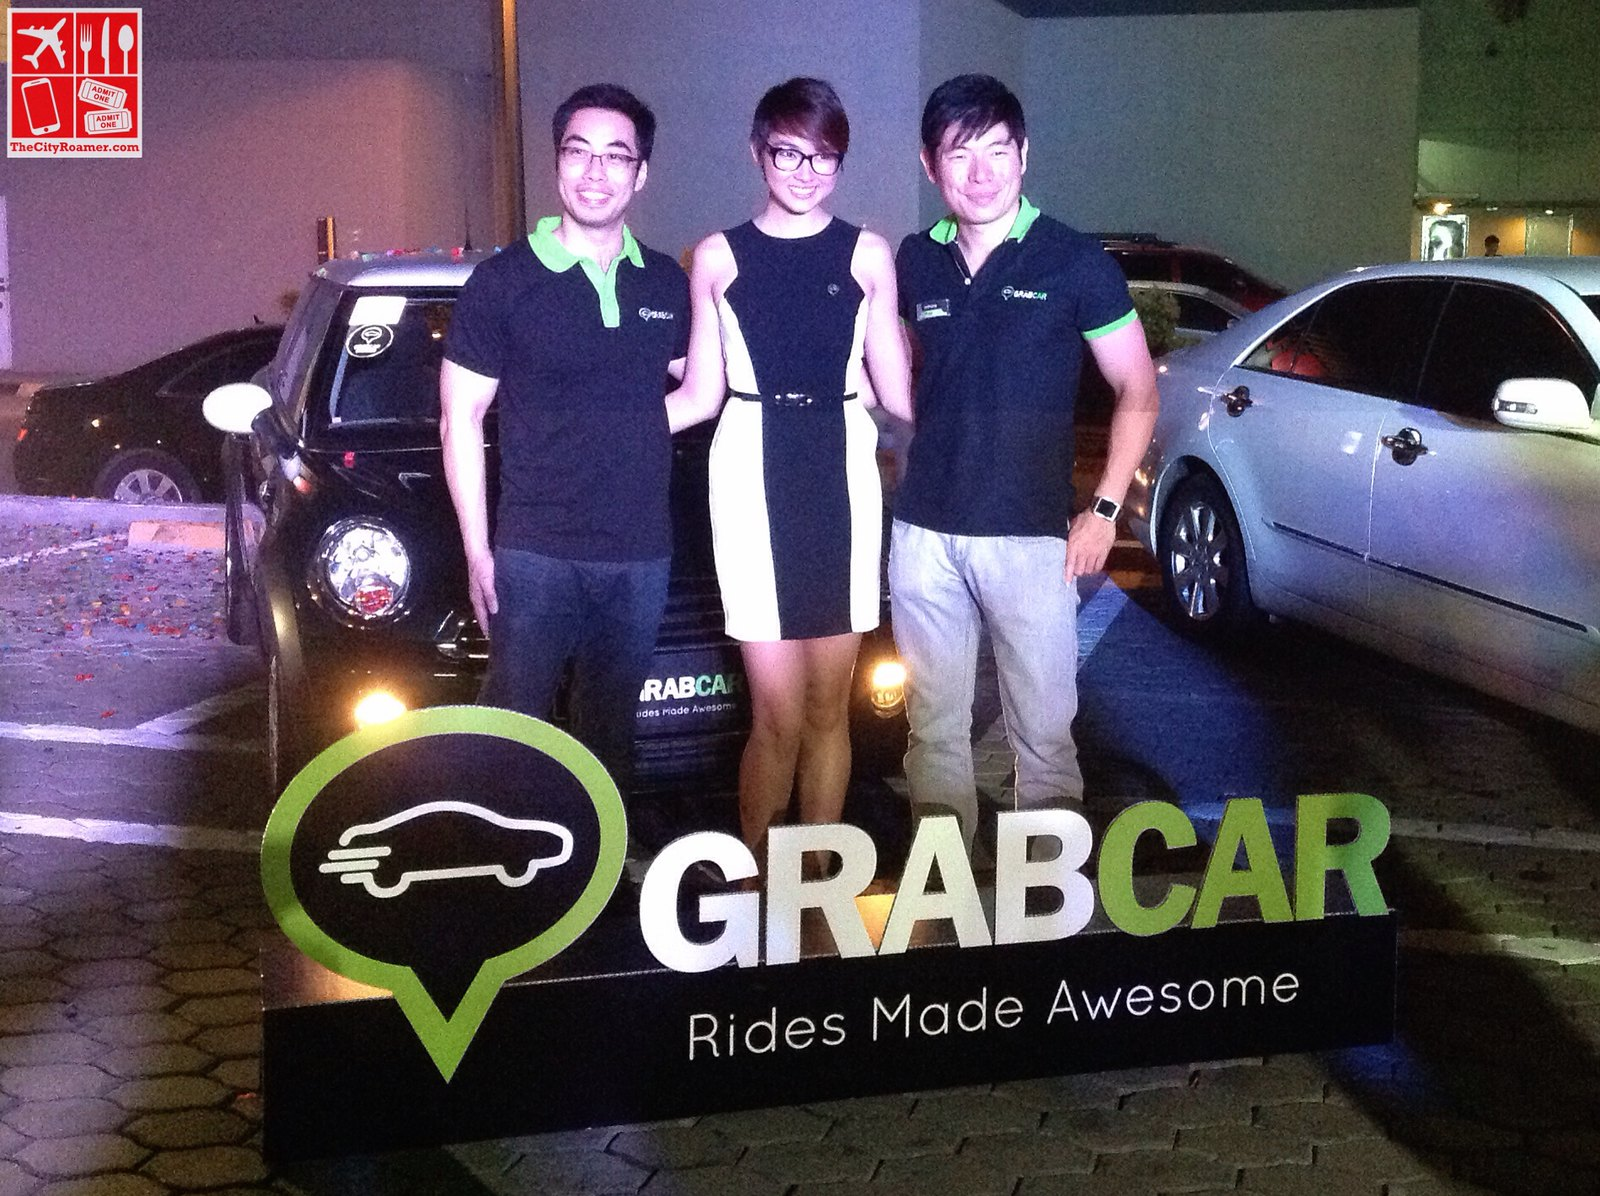 The GrabTaxi Philippines Executives at the GrabCar Media Launch